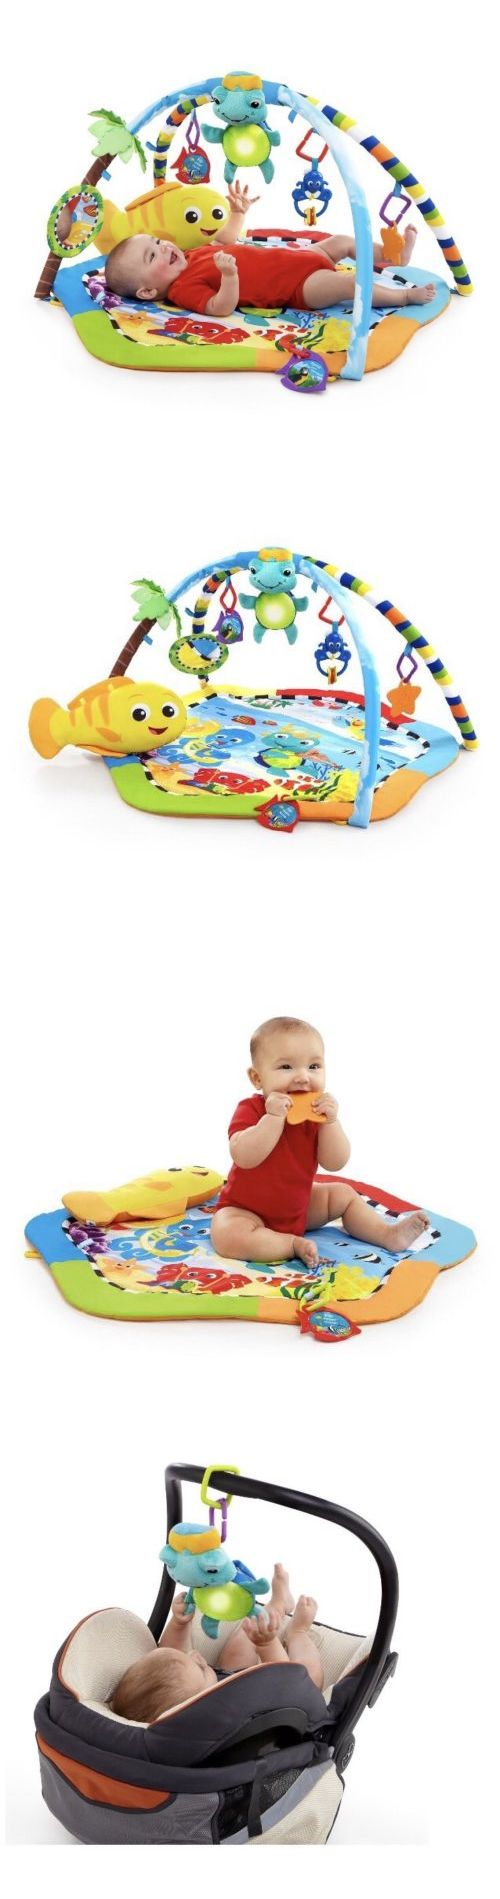 Baby Gyms and Play Mats 19069: Nip Baby Einstein Play Gym Rhythm Of The Reef Activity Mat Neptune The Turtle -> BUY IT NOW ONLY: $45 on eBay!